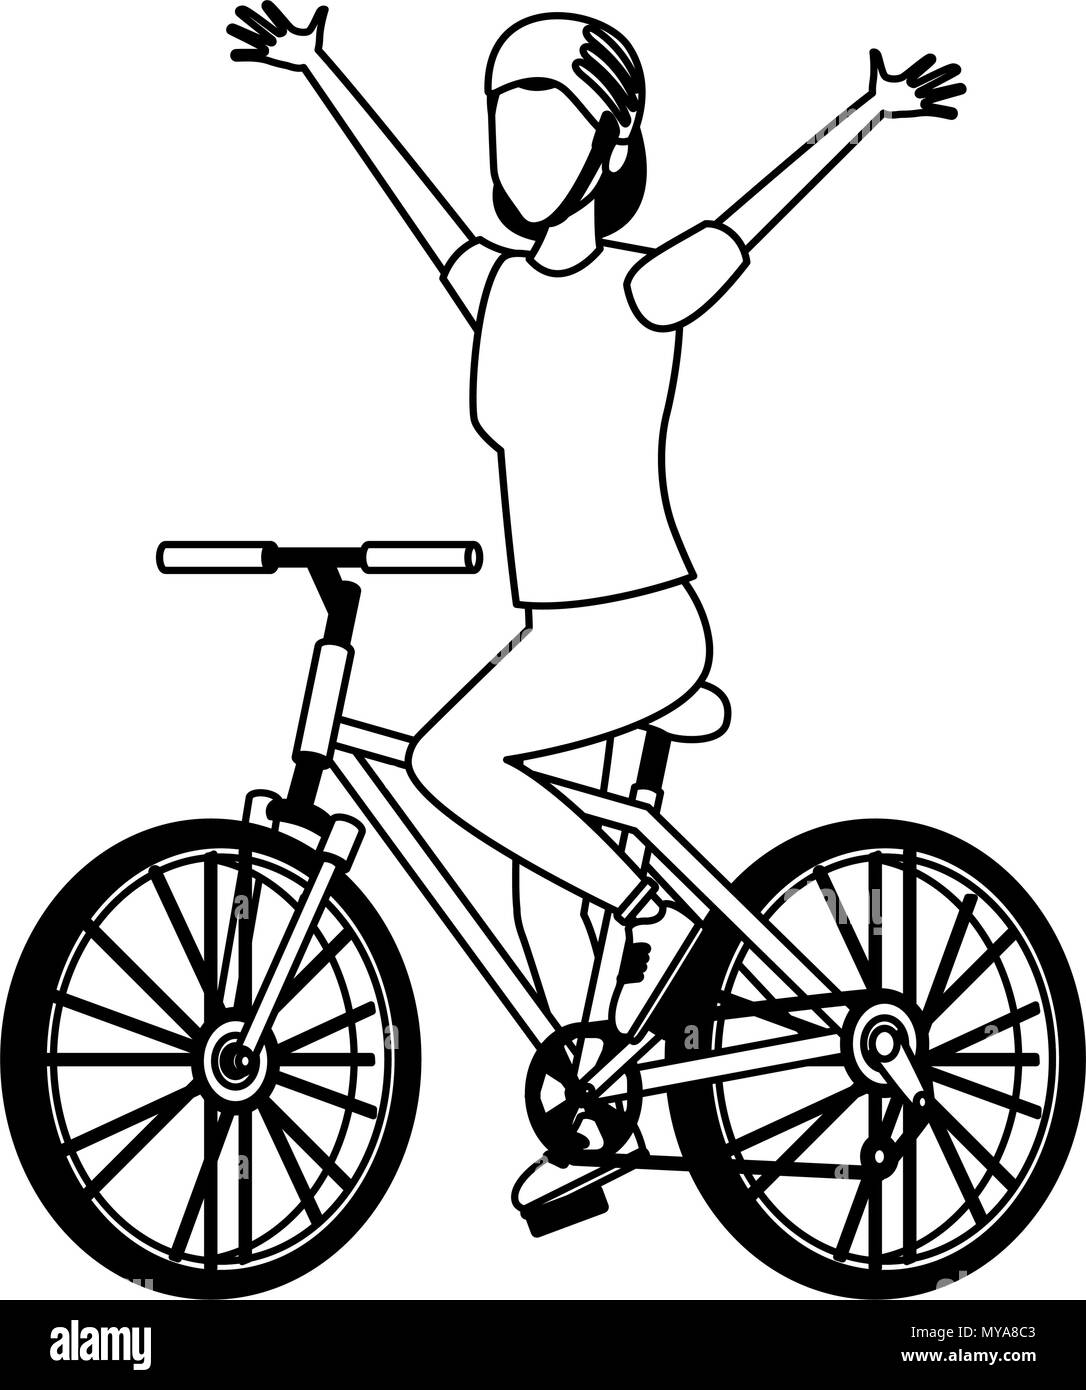 woman with bike black and white stock photos images alamy Jap Choppers woman with bicycle in black and white stock image